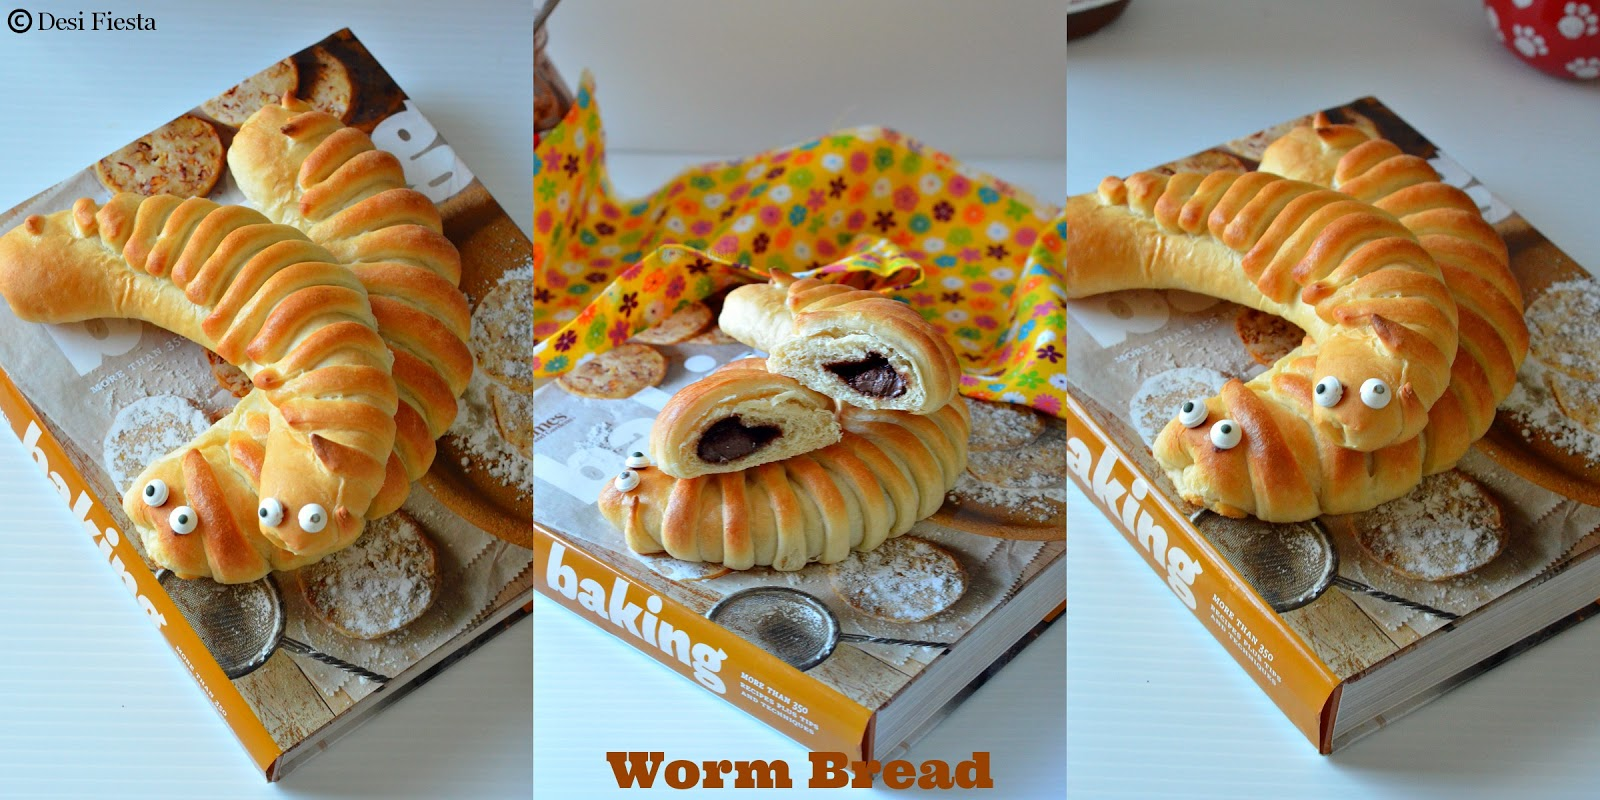 Worm shaped Bread